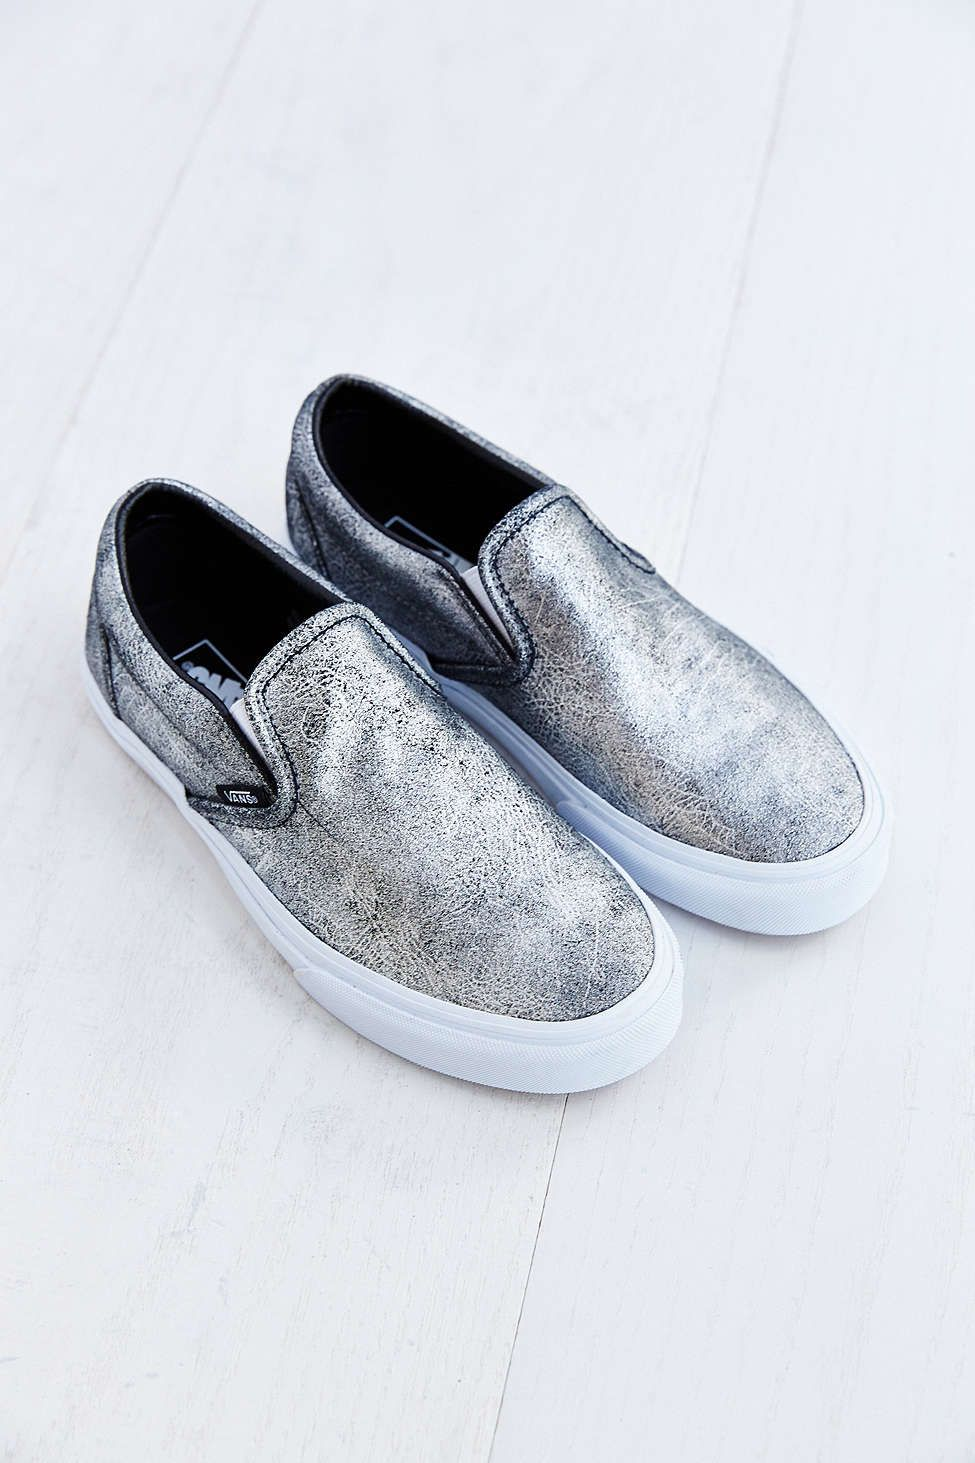 vans metallic silver s slip on sneaker attire